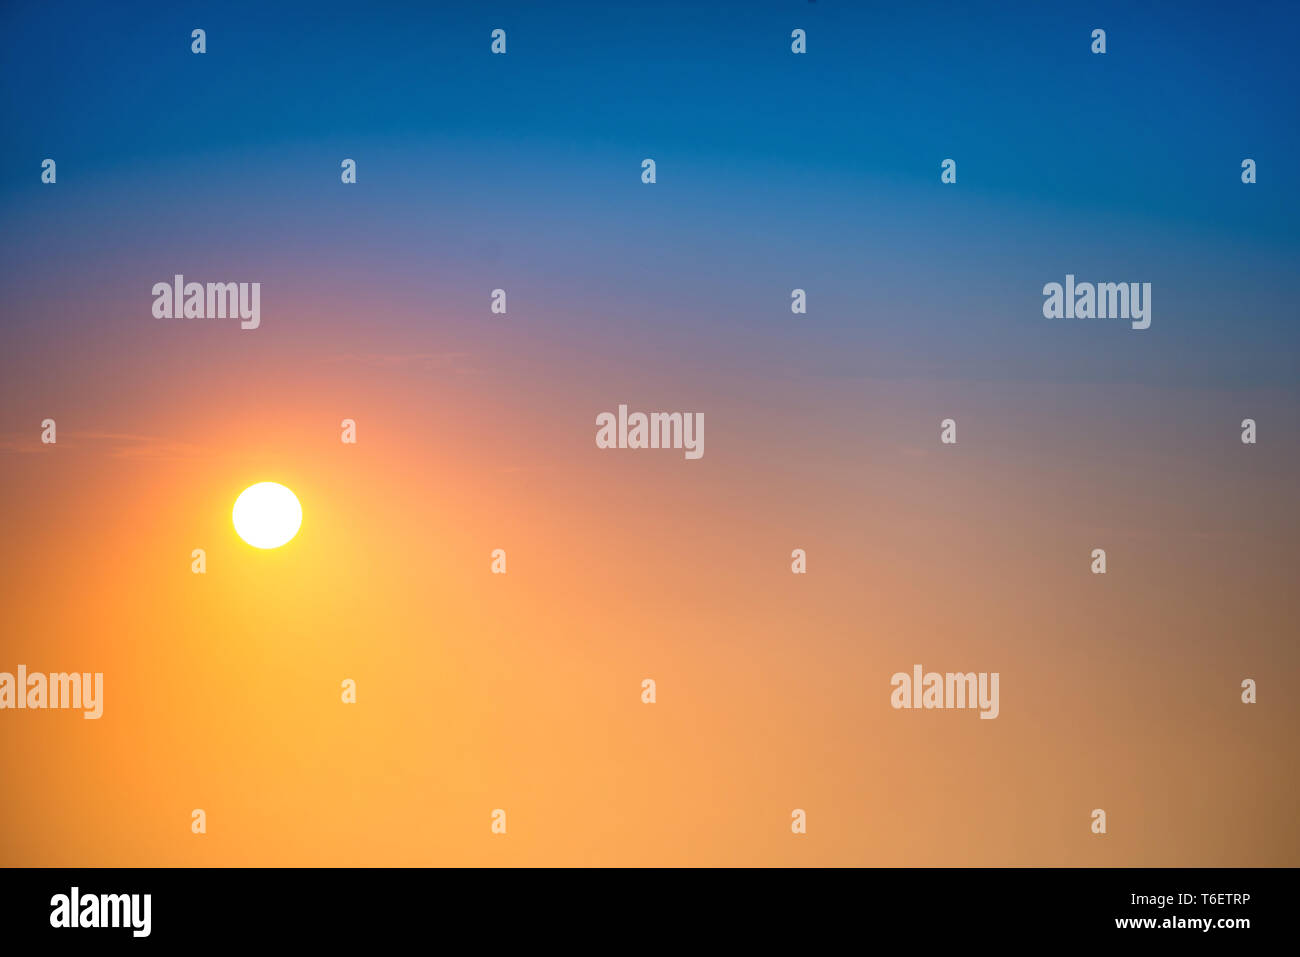 Sunset in the sky with big sun - Stock Image